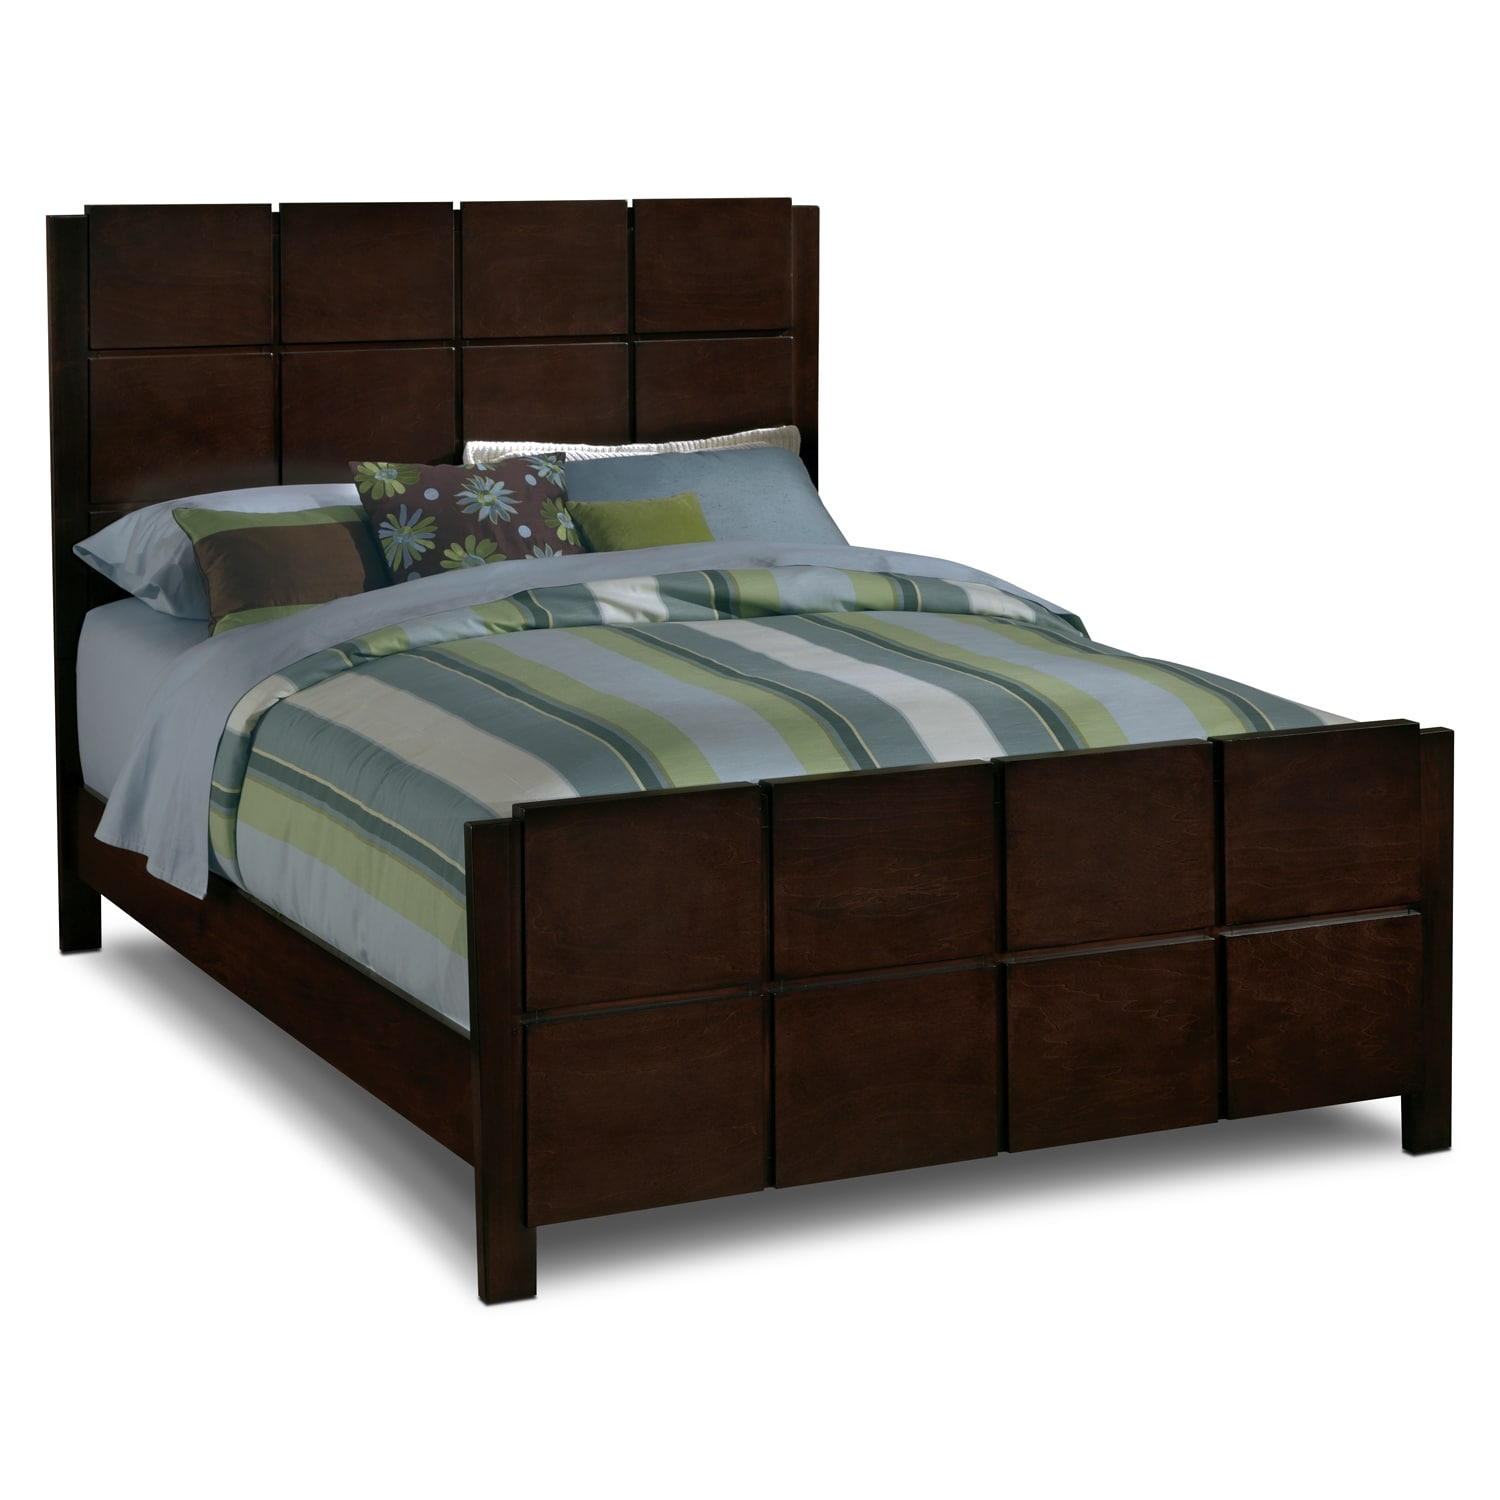 Mosaic queen bed value city furniture for Furniture and beds